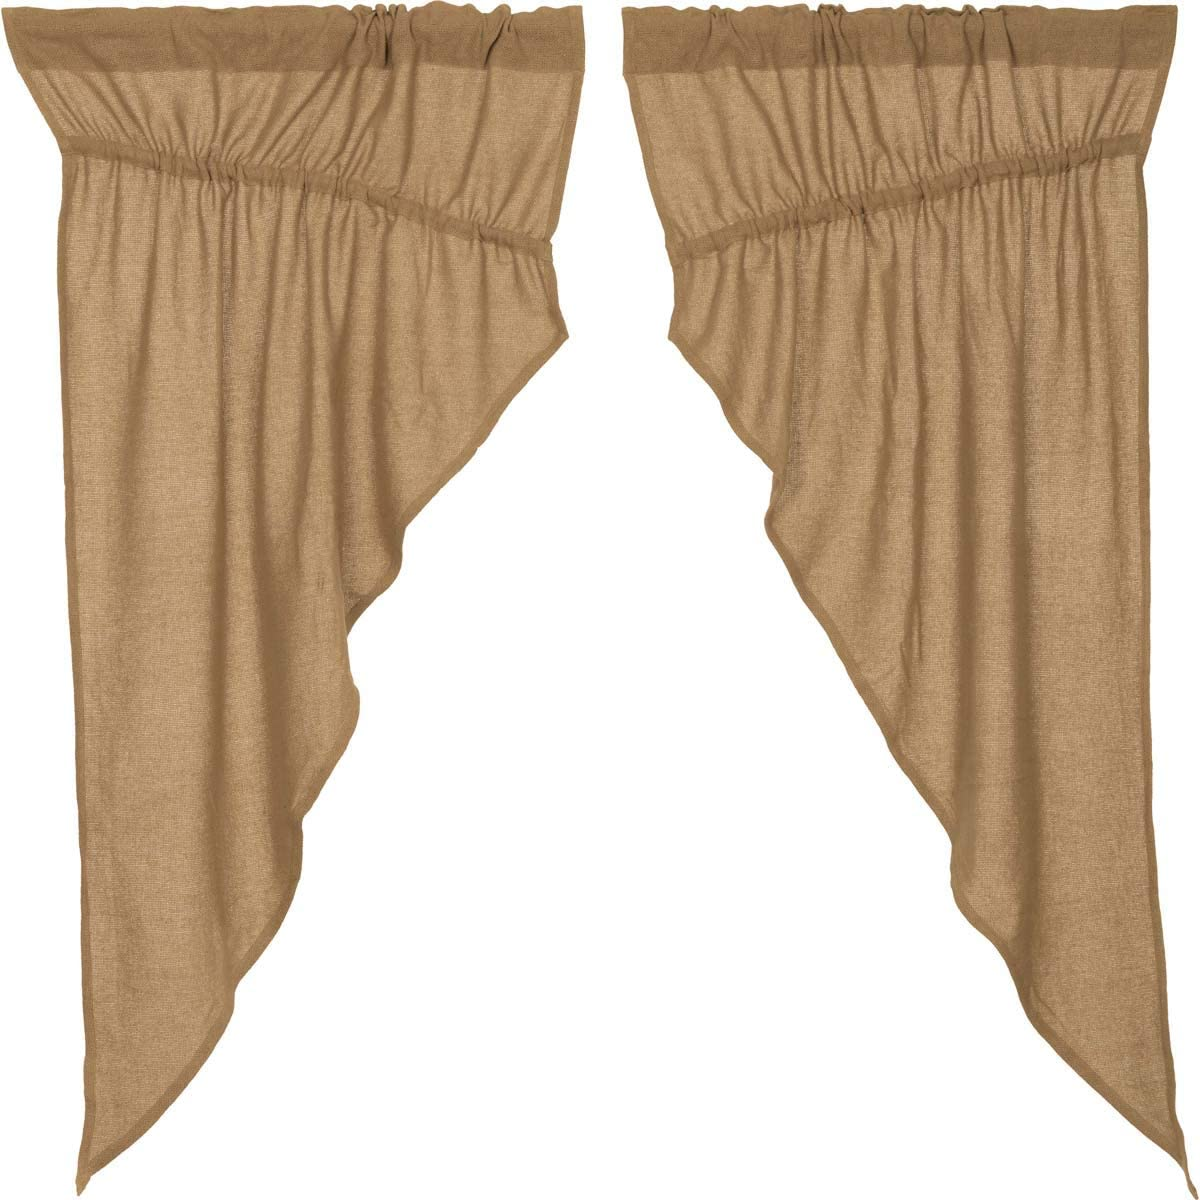 VHC Special price for a limited time Brands Burlap Natural Curtain low-pricing T Panel Set Prairie 63x36x18